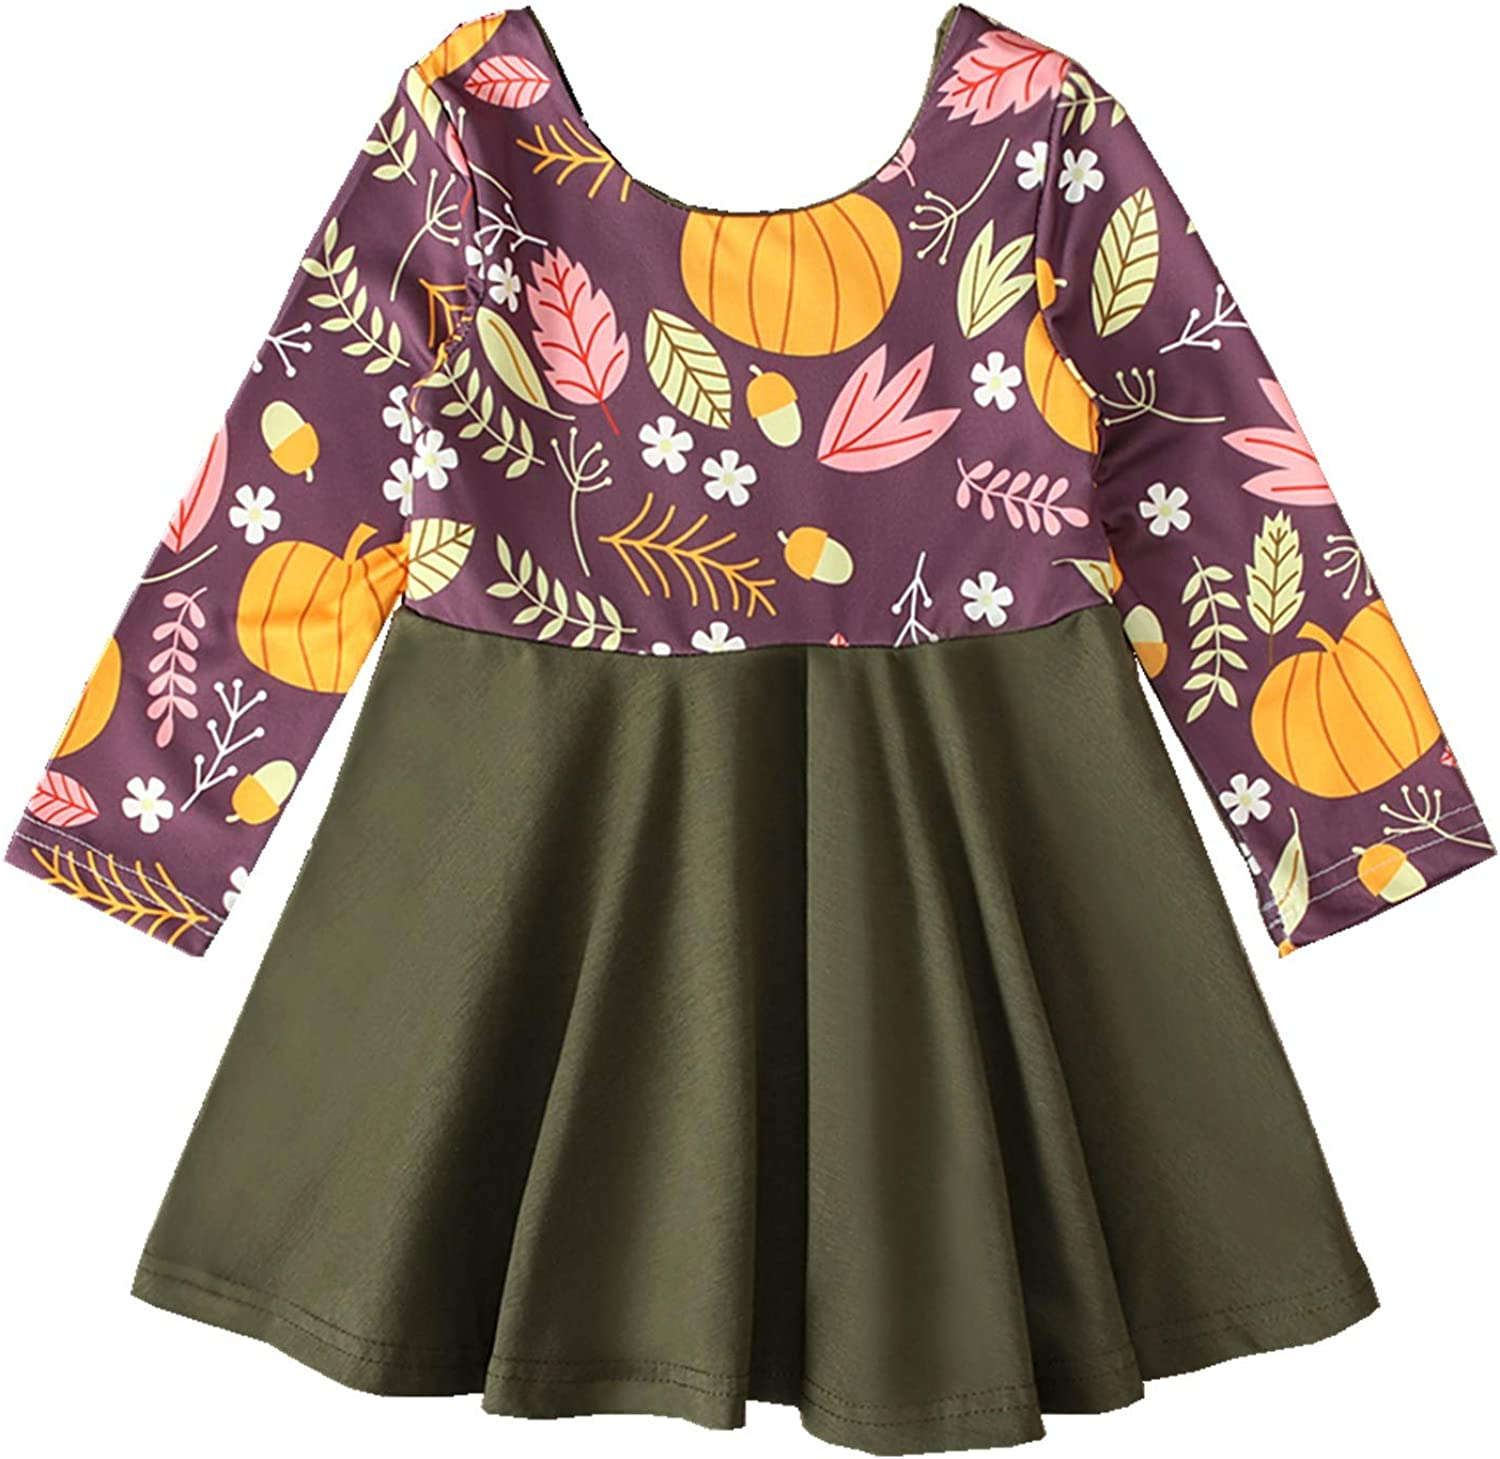 Merqwadd Toddler Baby Max Excellence 85% OFF Girl Holiday Summ Dress Spring Outfit Cute